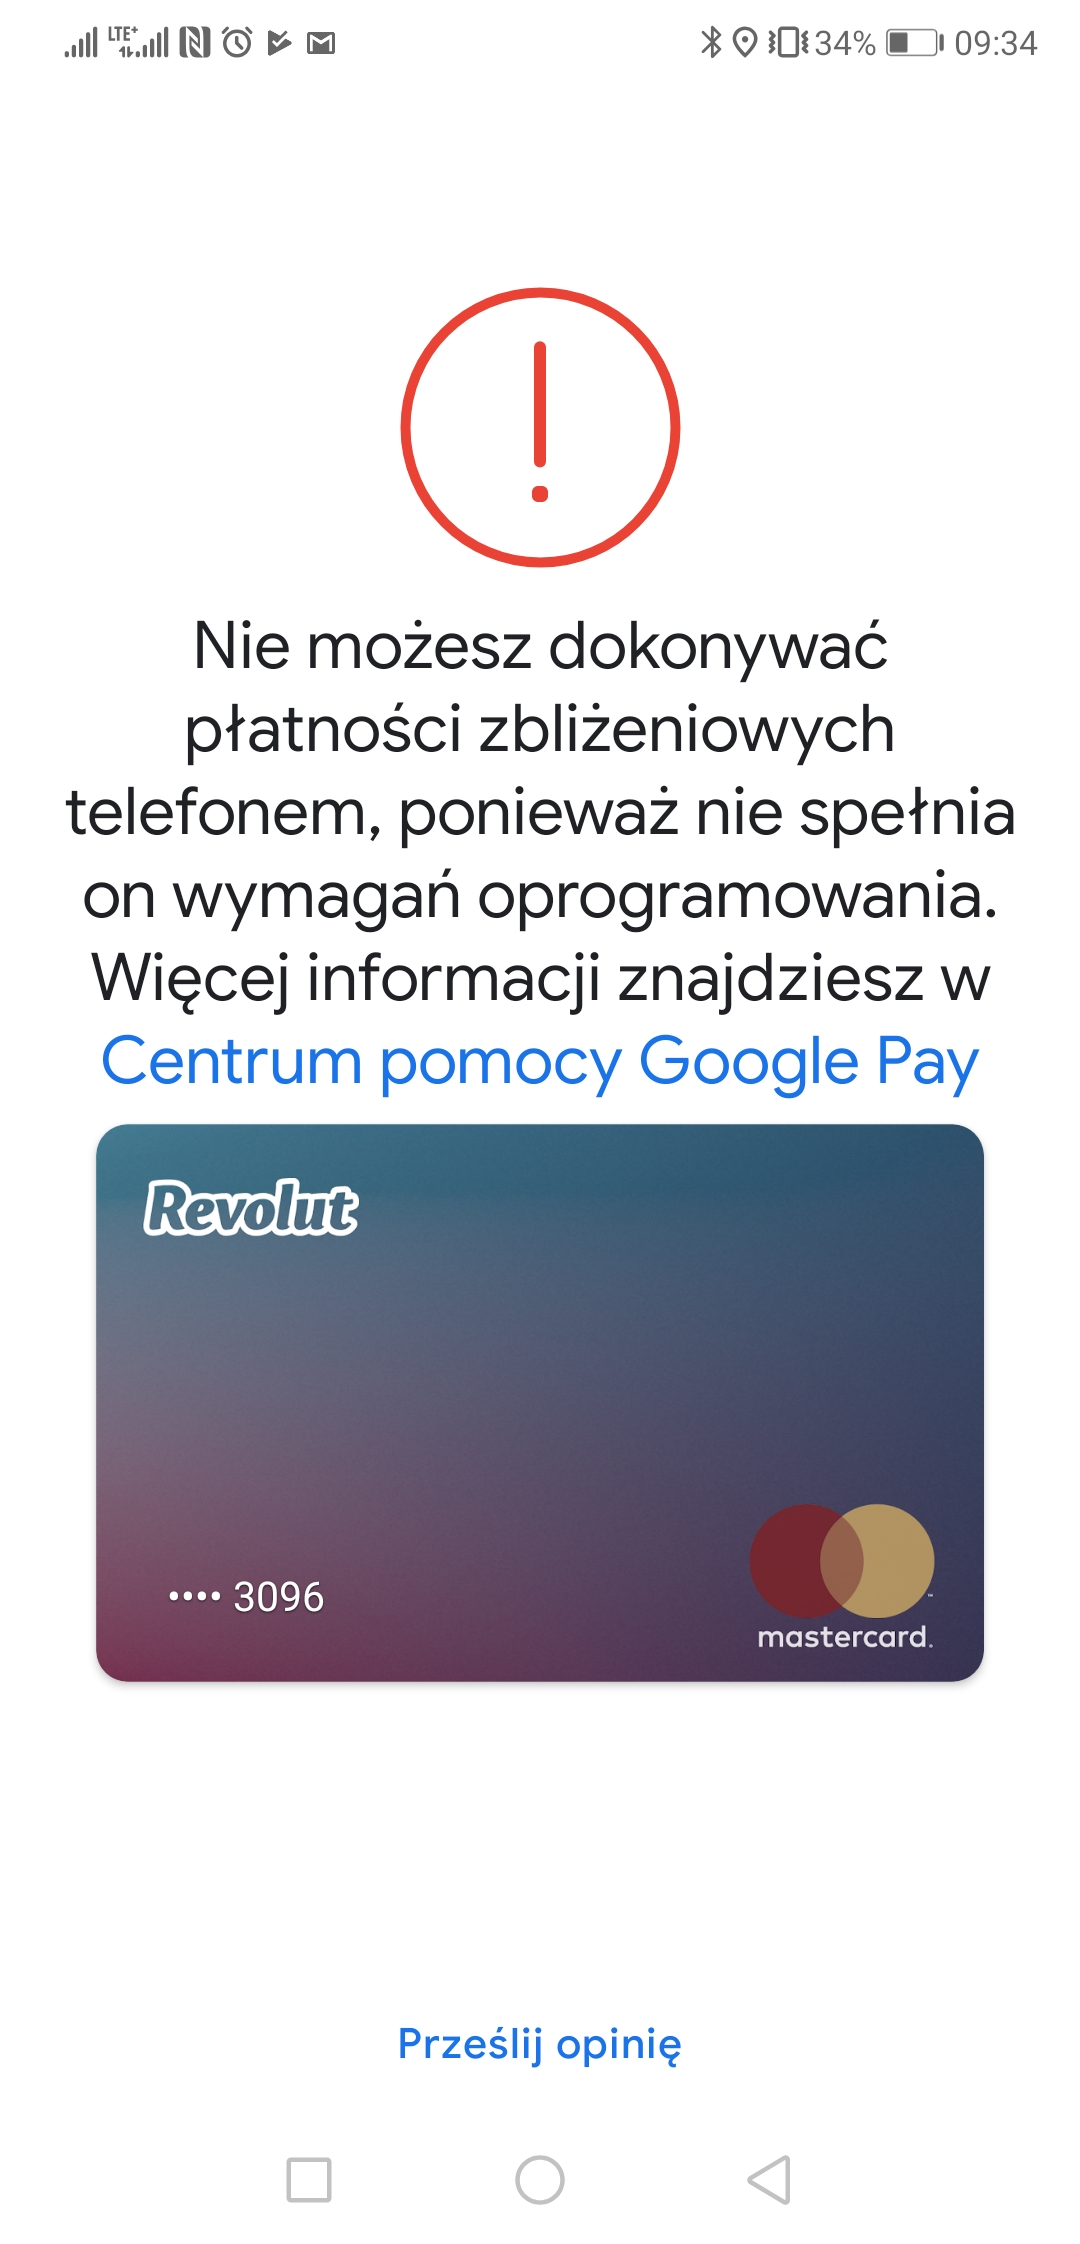 huawei p20 p20 pro without google play protect android pay certificate is not working